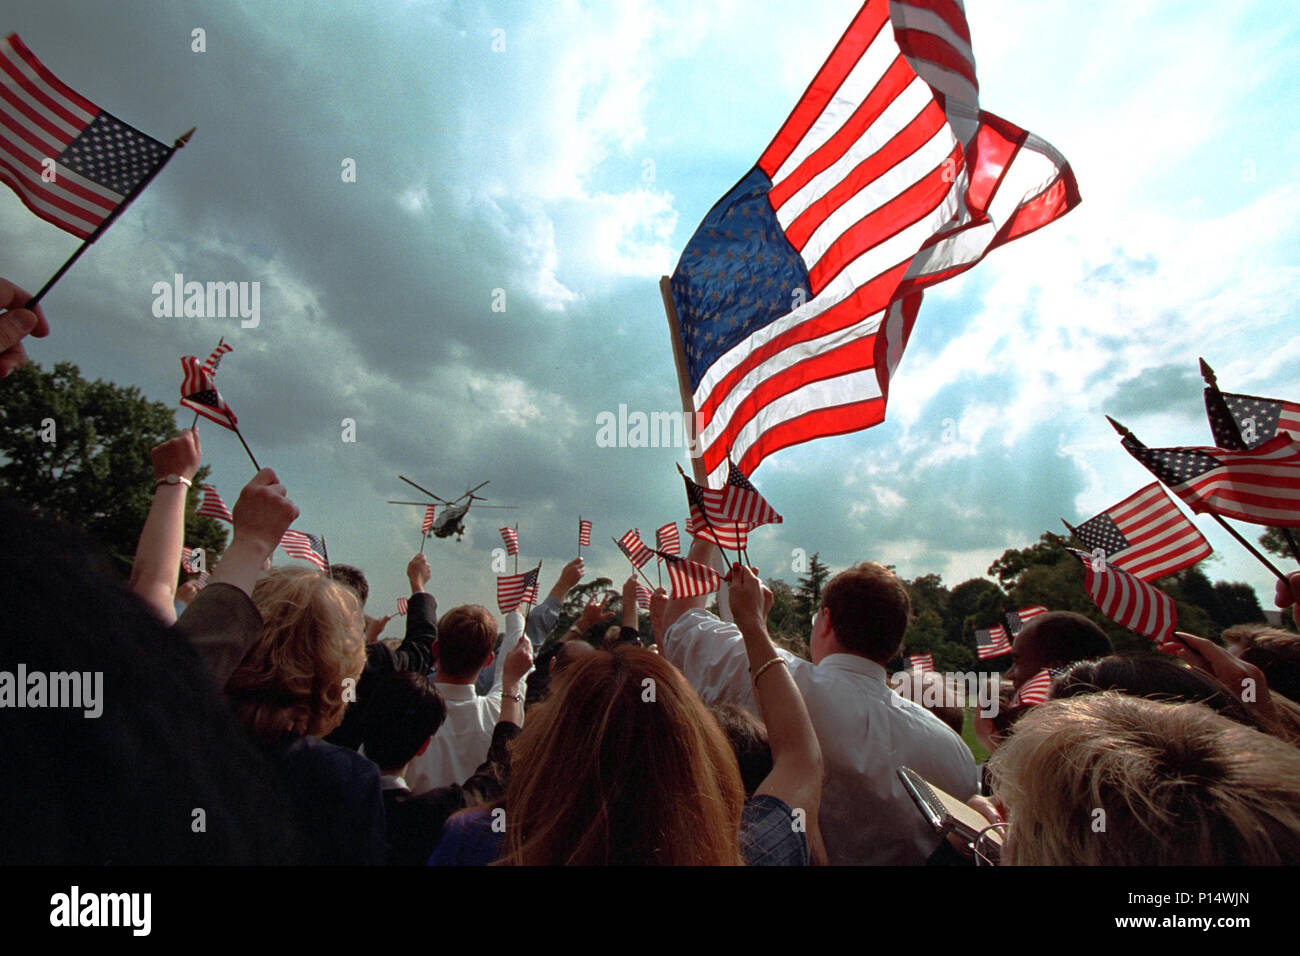 Staff members wave American flags as they gather on the South Lawn of the White House Friday, Sept. 21, 2001, as President George W. Bush and Mrs. Laura Bush depart for Camp David aboard Marine One. Stock Photo